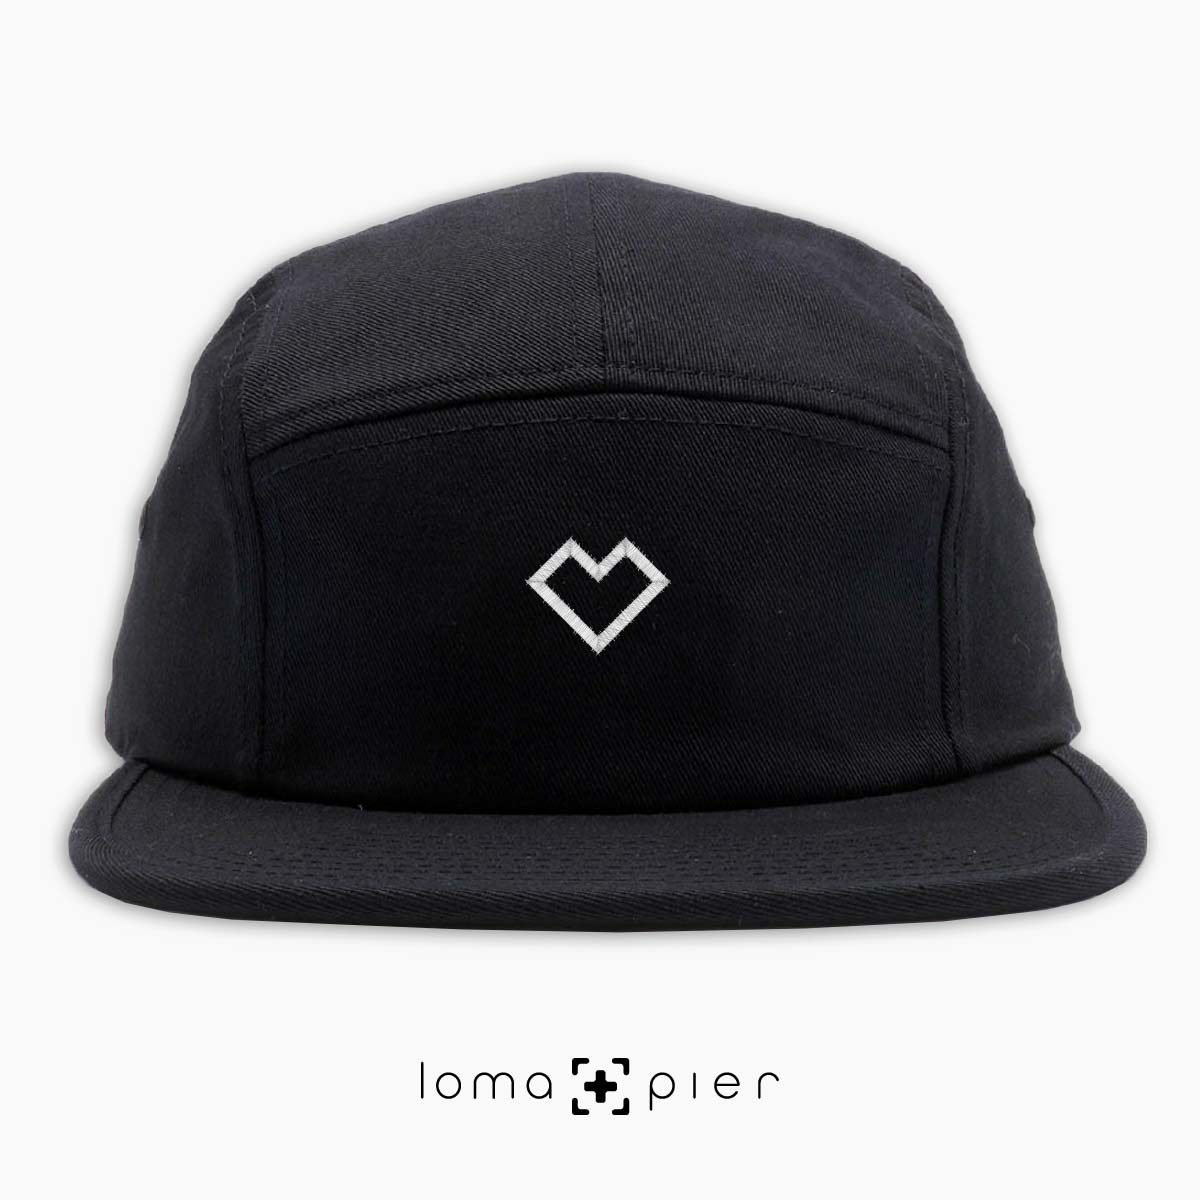 EDGY HEART typography embroidered on a black cotton 5-panel hat with white thread by loma+pier hat store